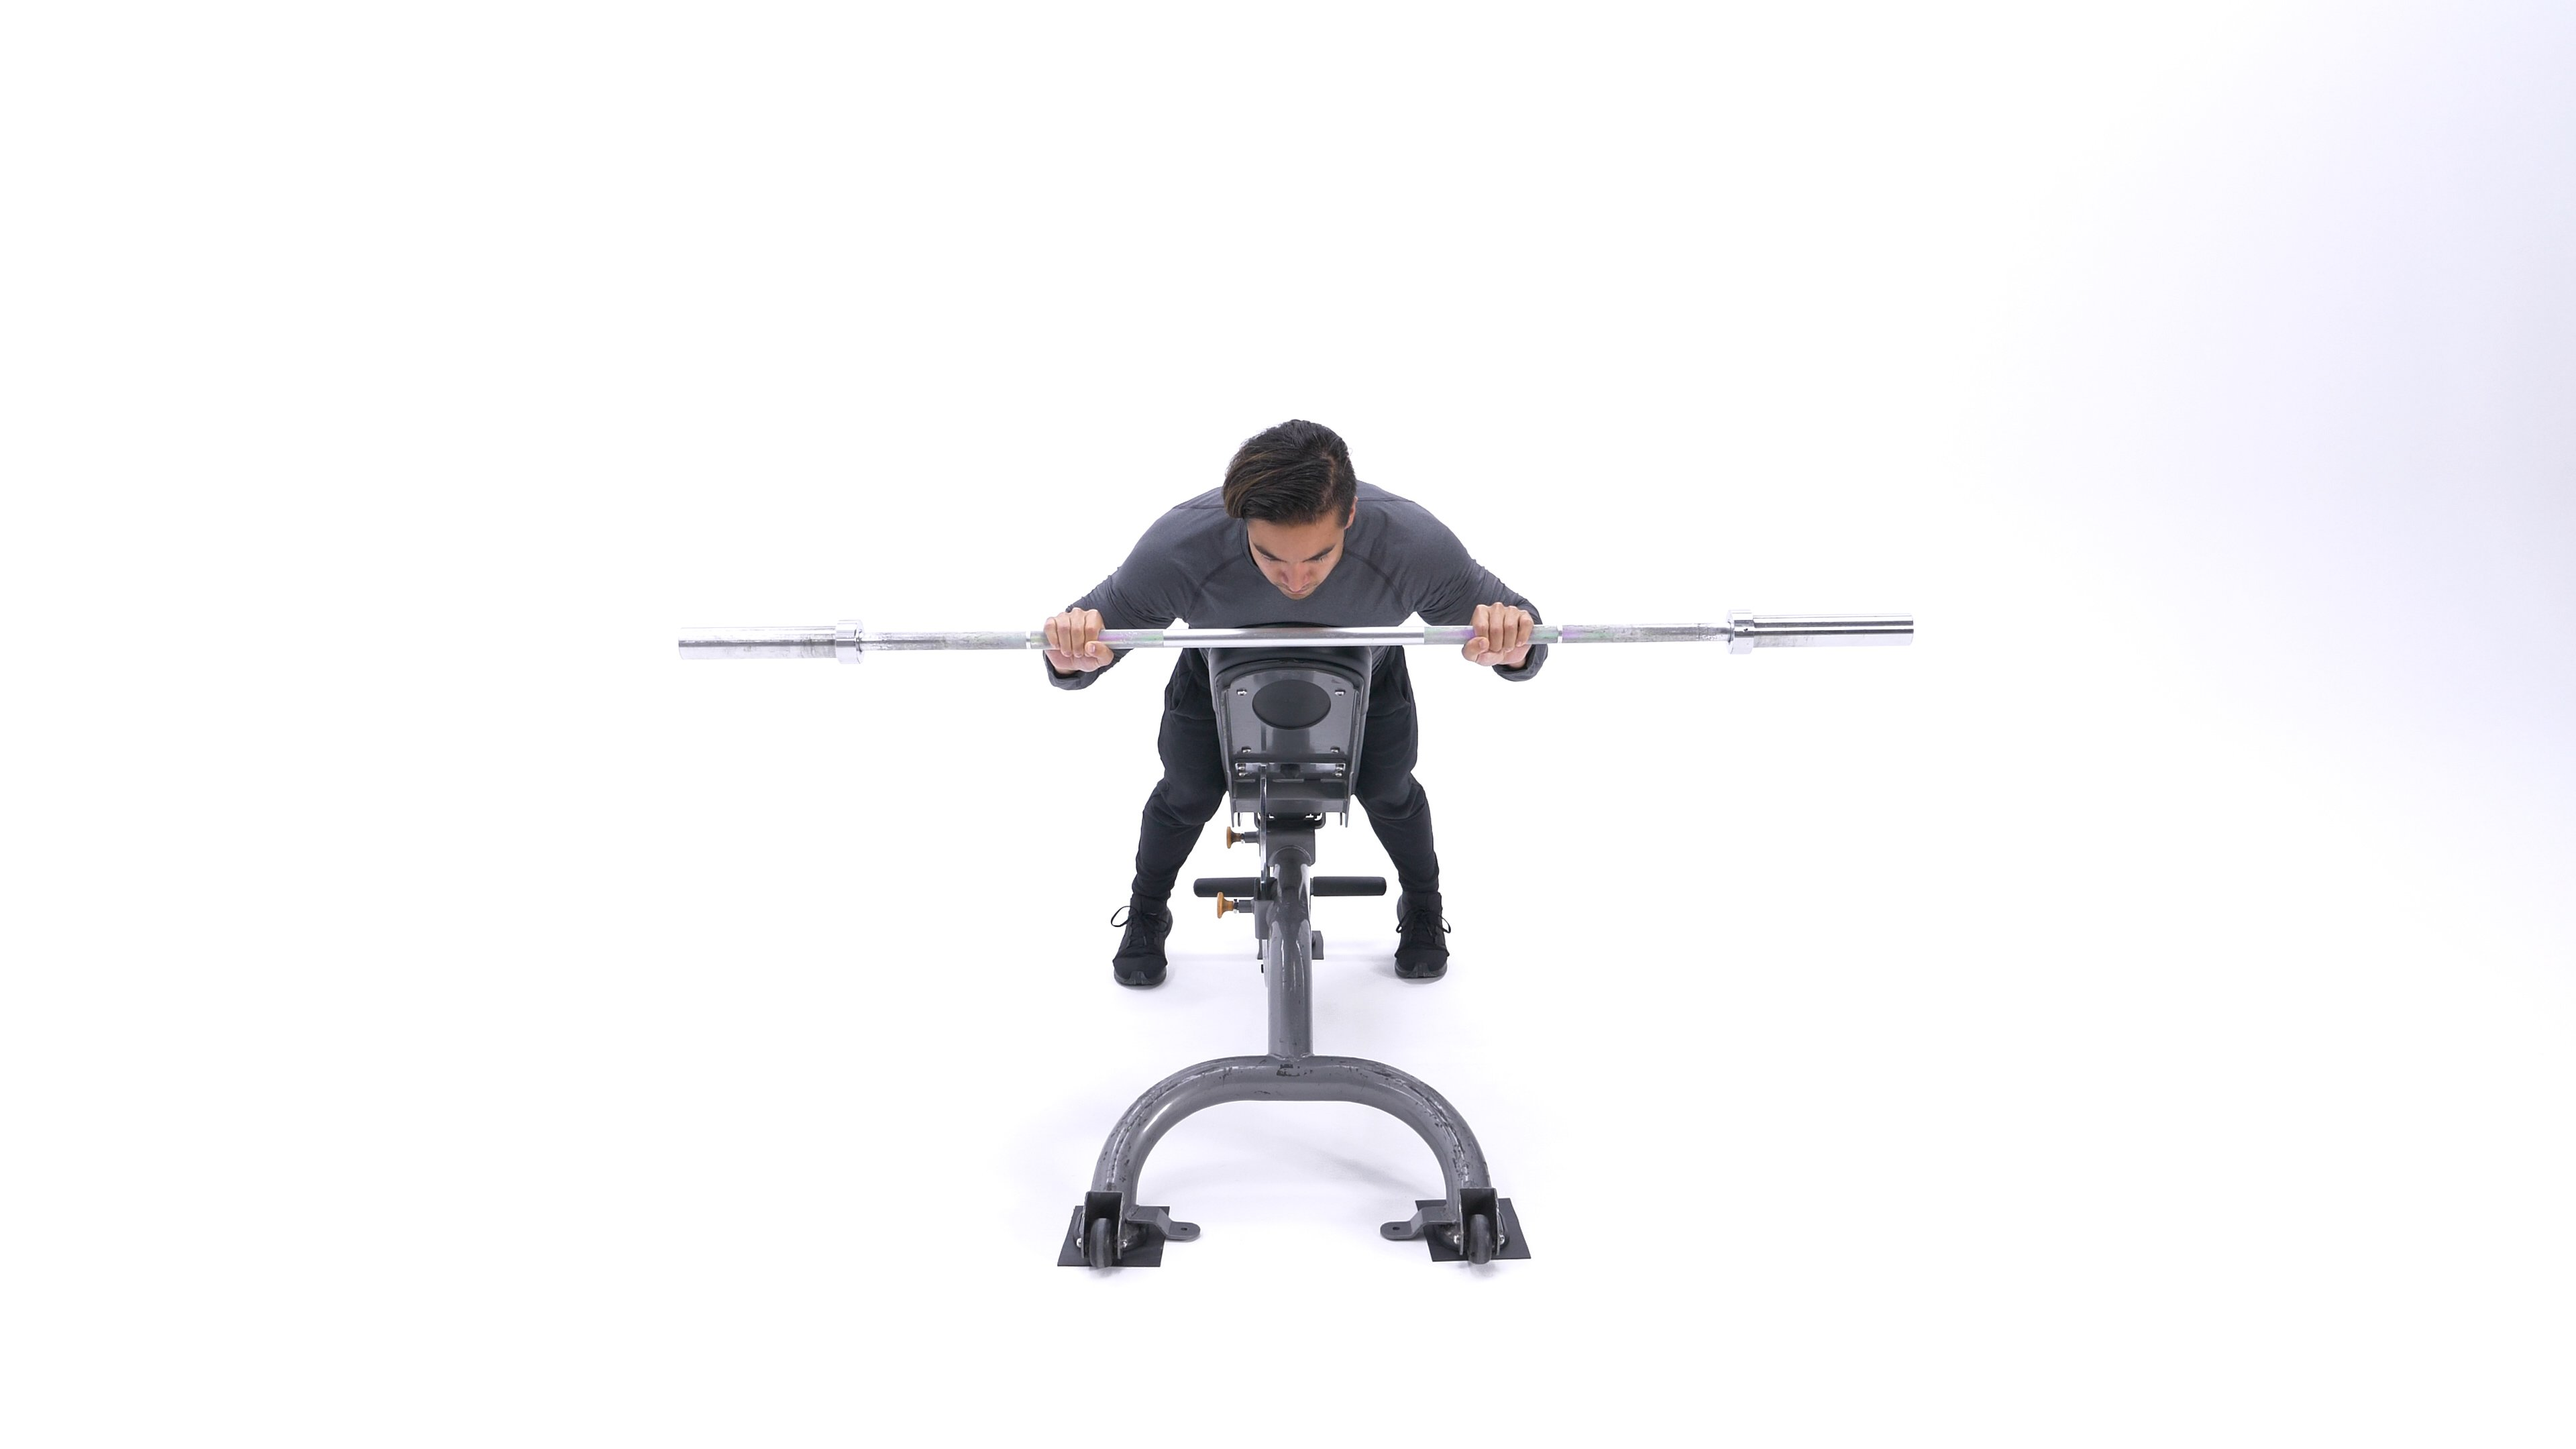 Incline anti-gravity shoulder press image